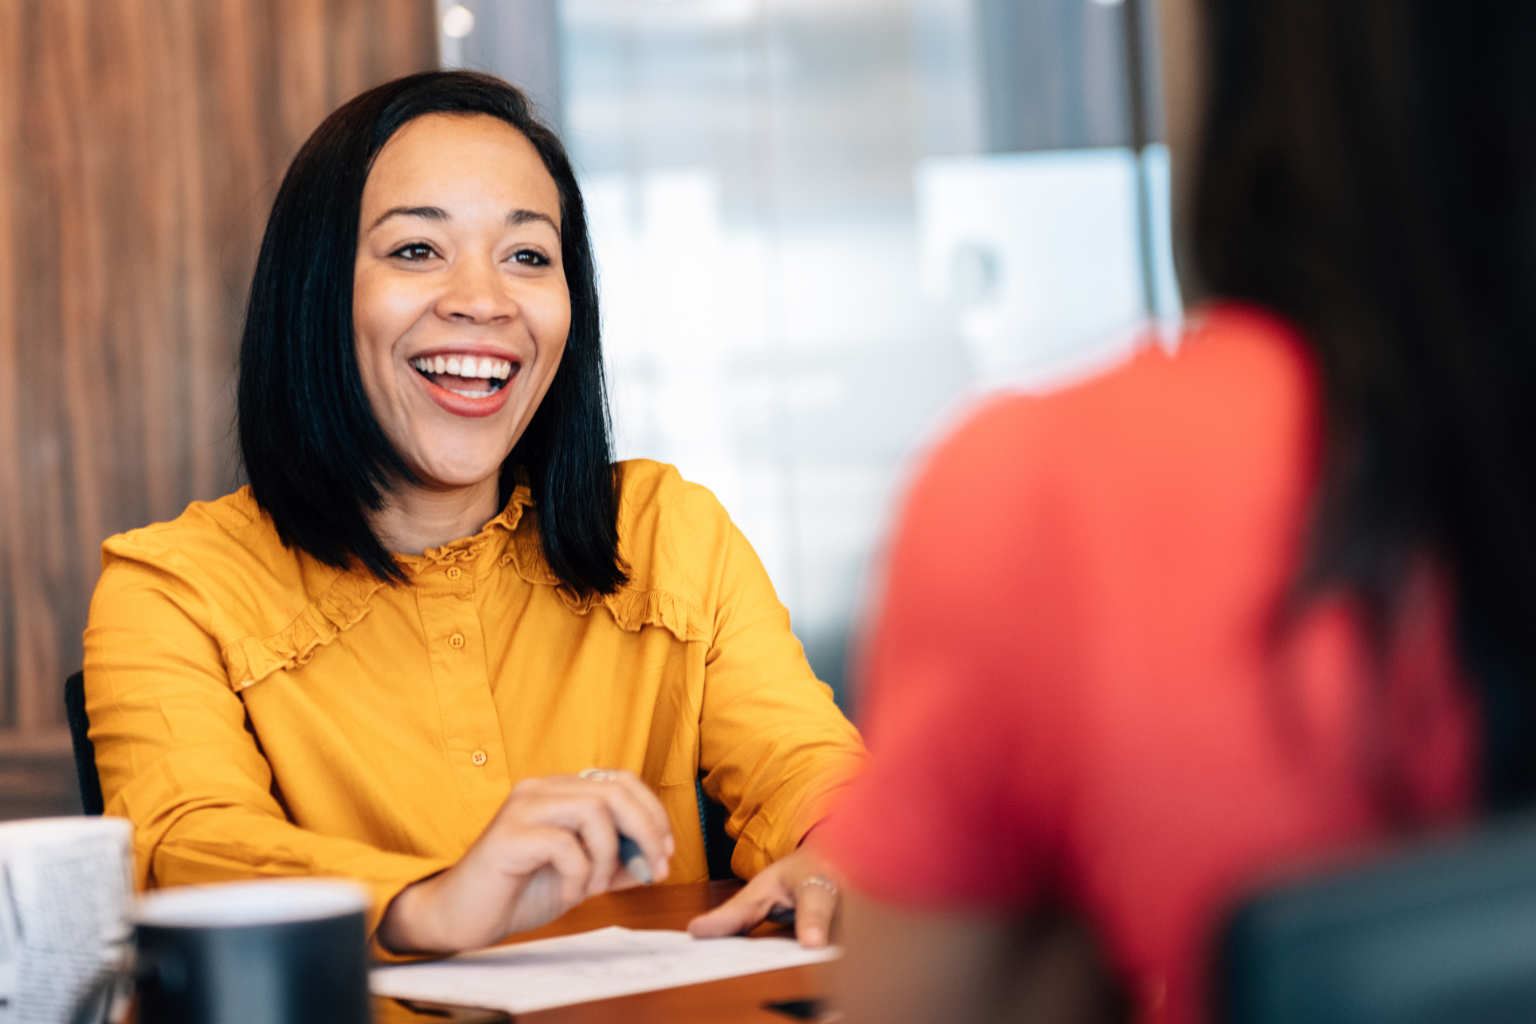 woman engages with client